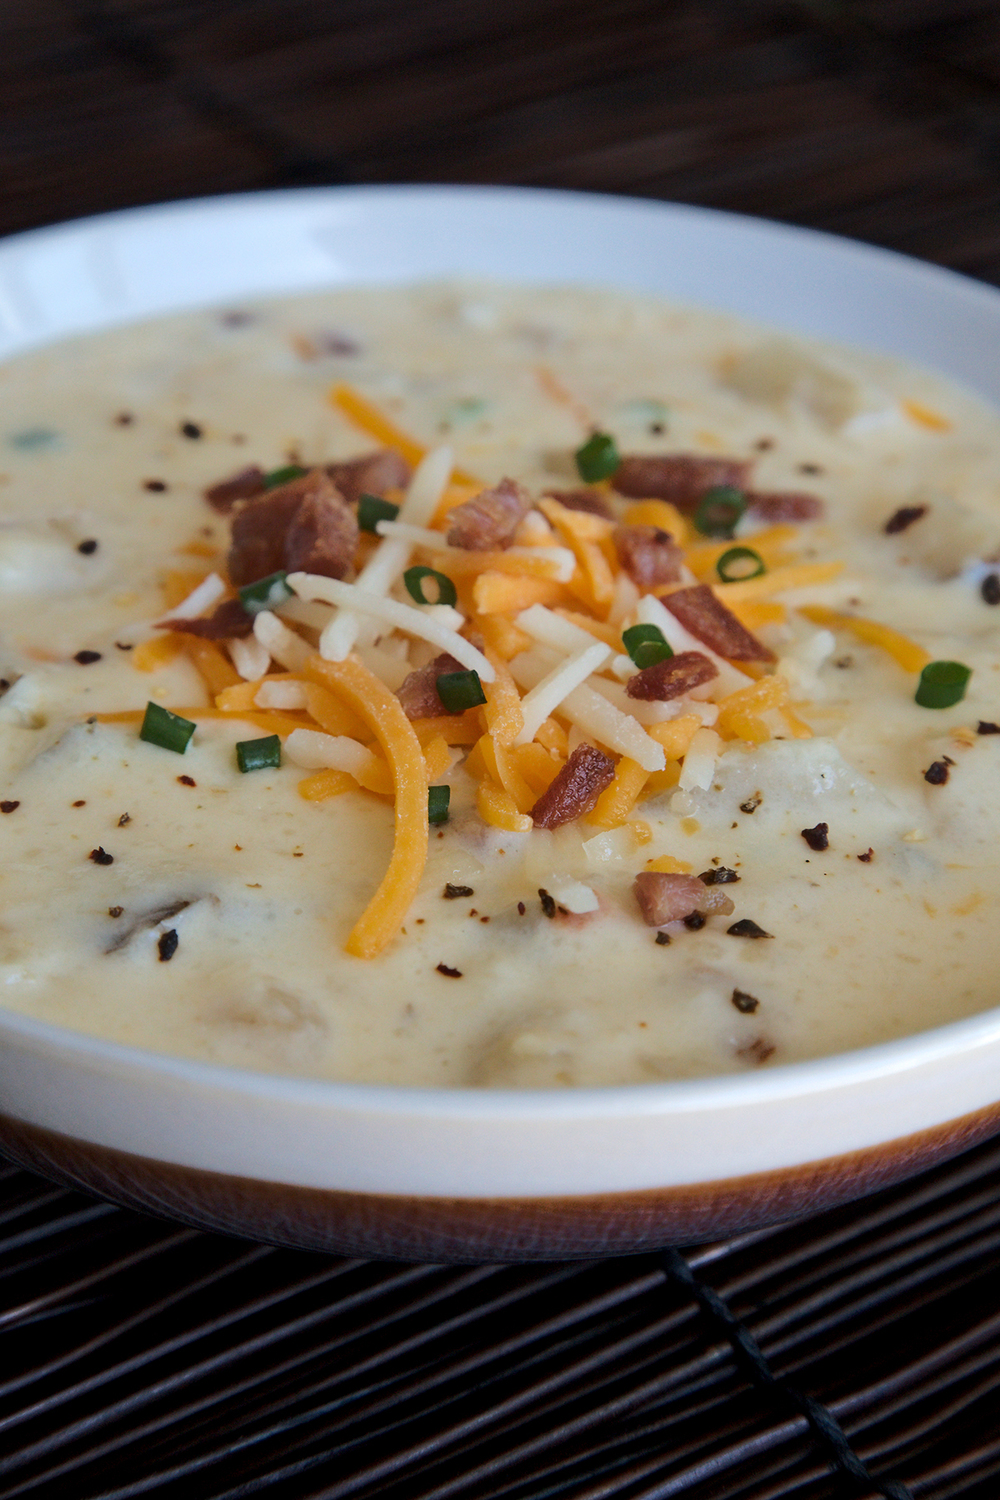 LoadedPotatoSoup.jpg